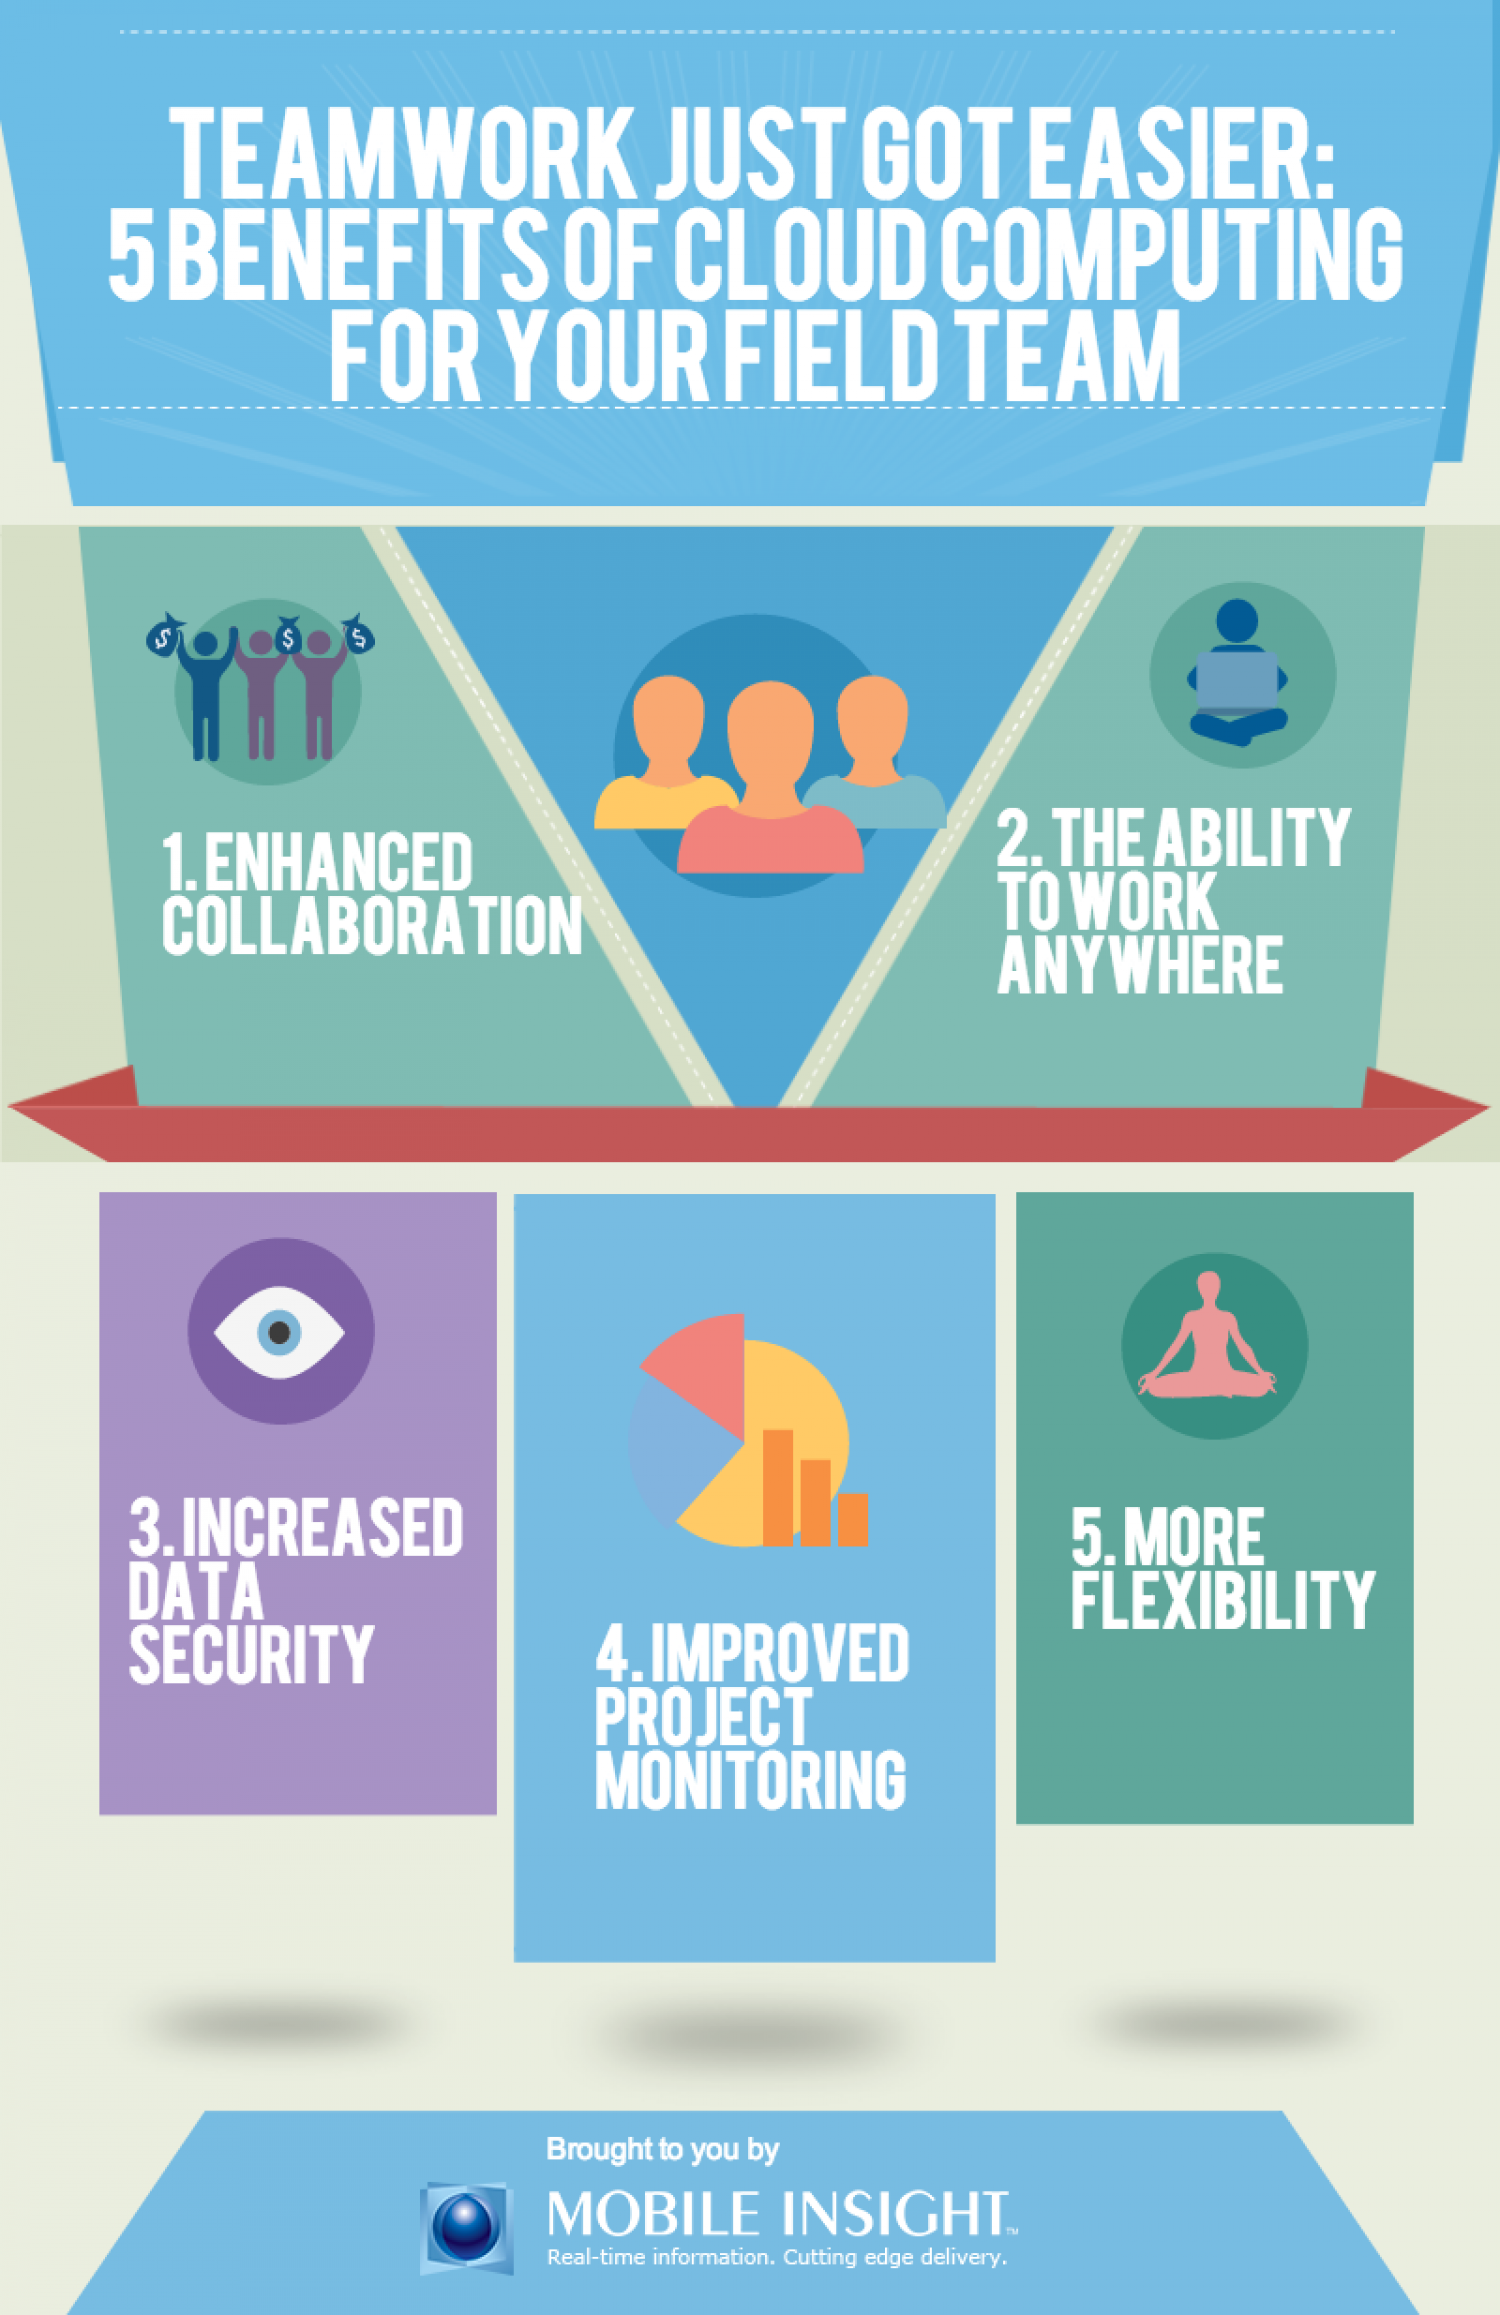 Teamwork Just Got Easier: 5 Benefits of Cloud Computing for Your Field Team Infographic